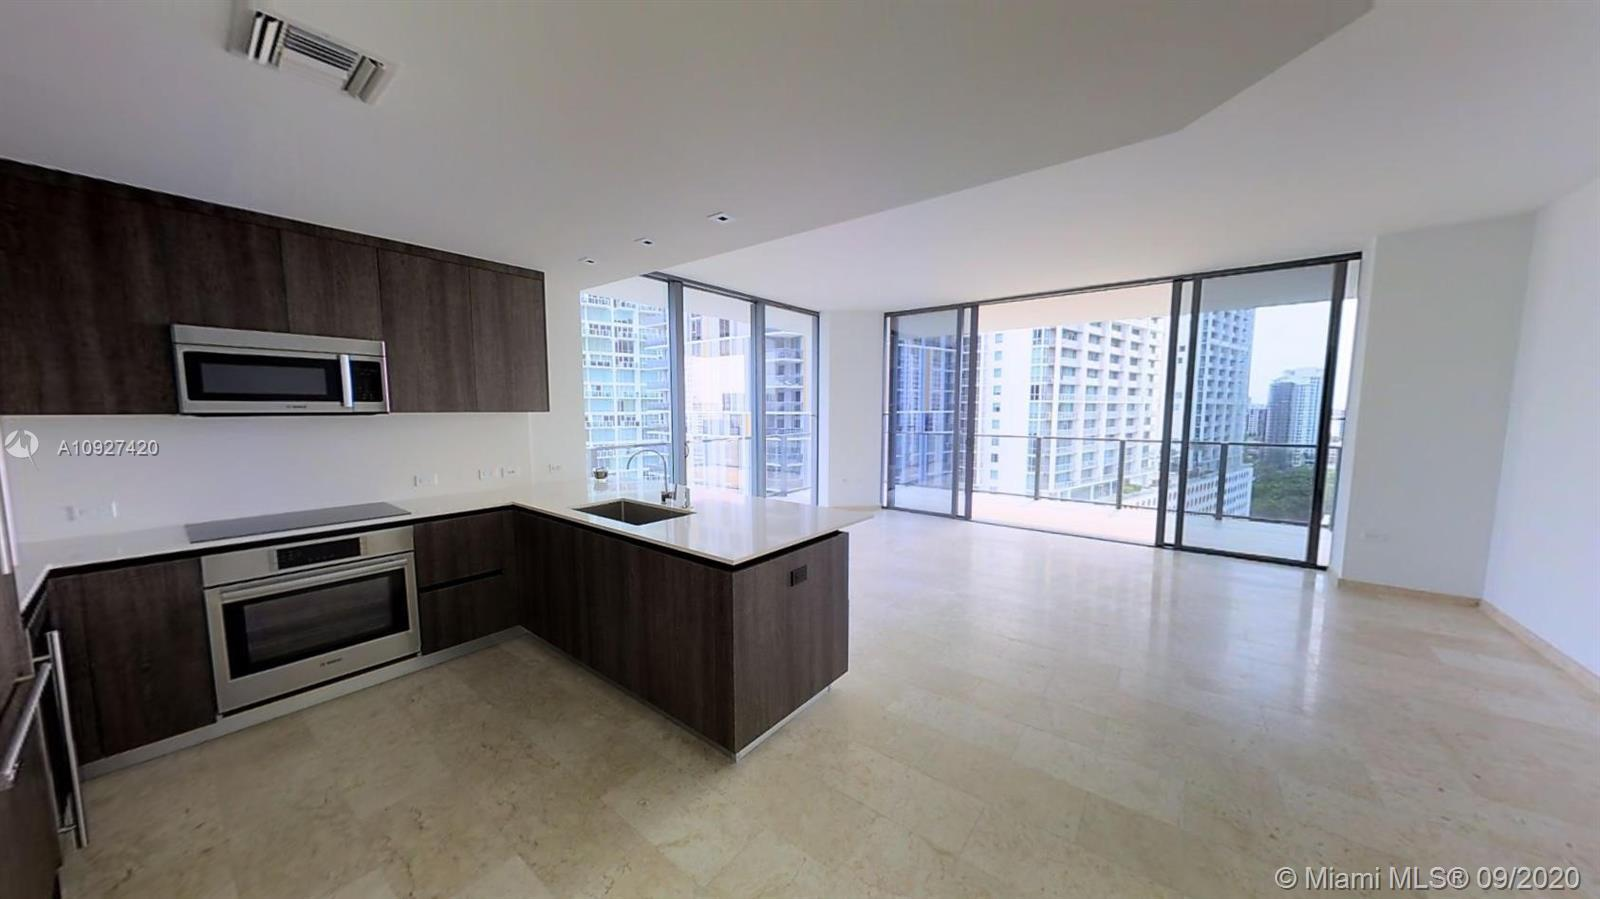 2 BR 2.5 BA Corner unit 1,680 Sq/ft (TA) Spectacular views of Miami River, Biscayne Bay, and Brickel